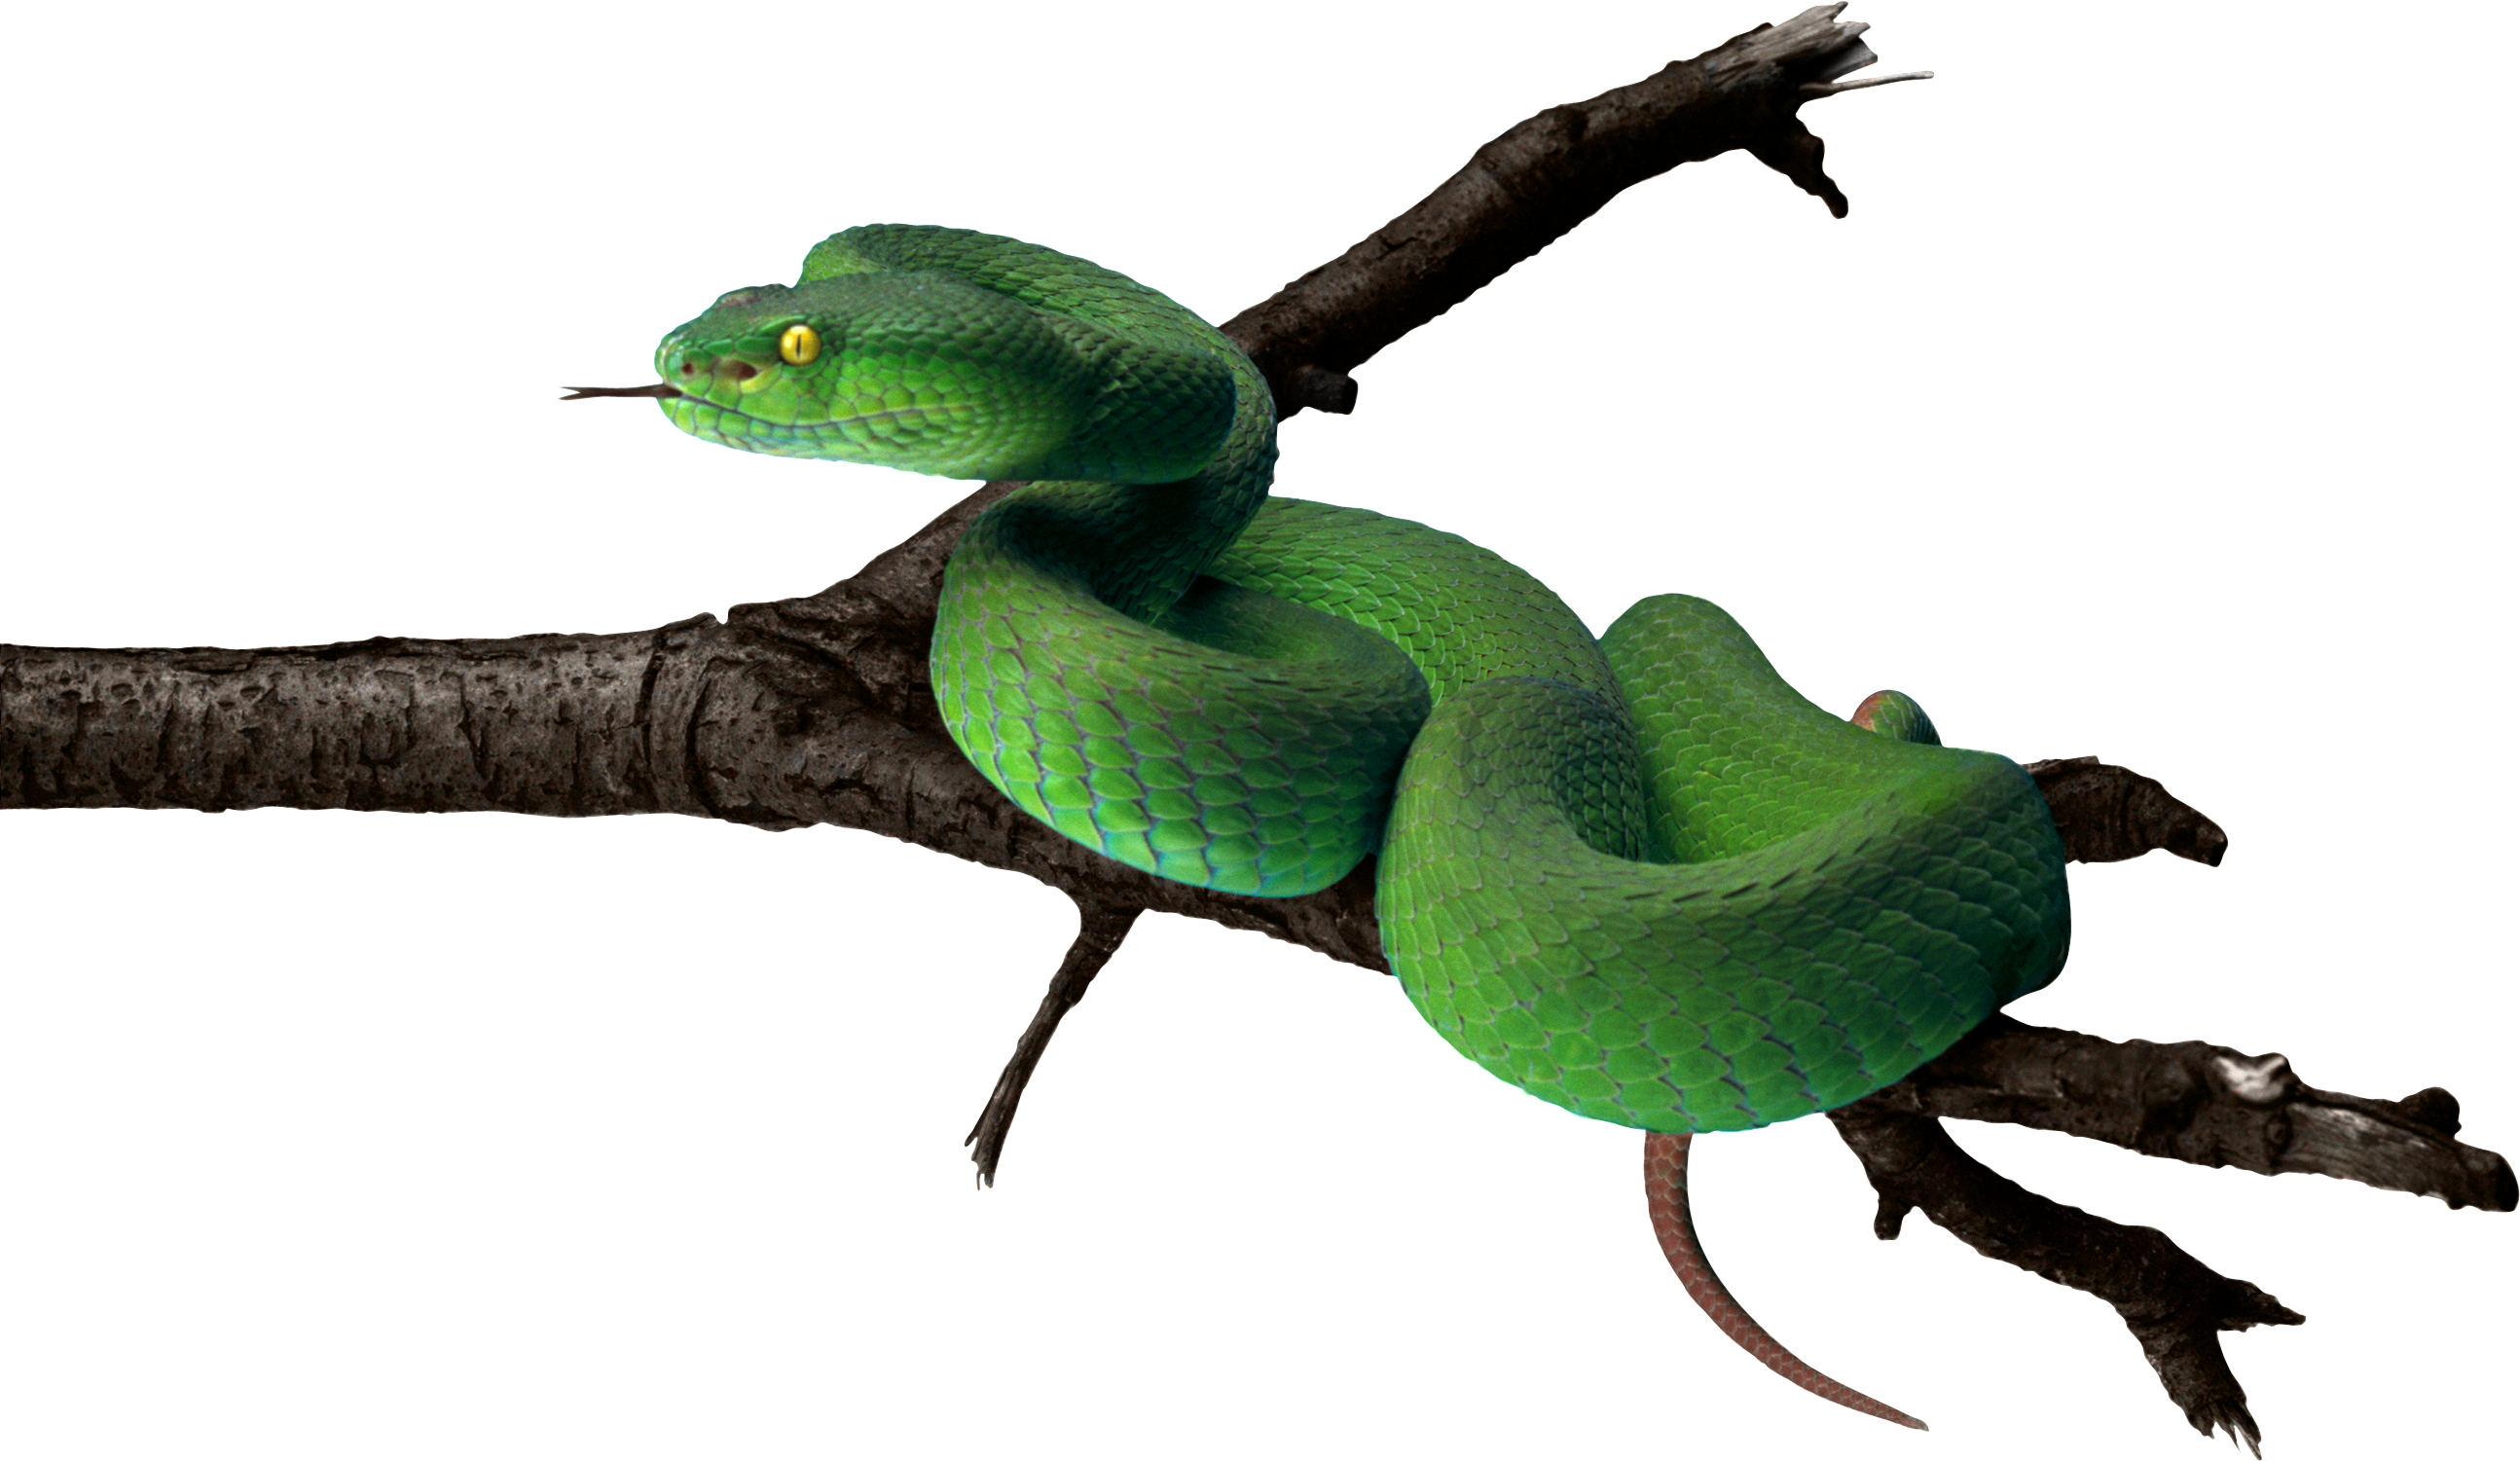 Green snake png. Image free download picture